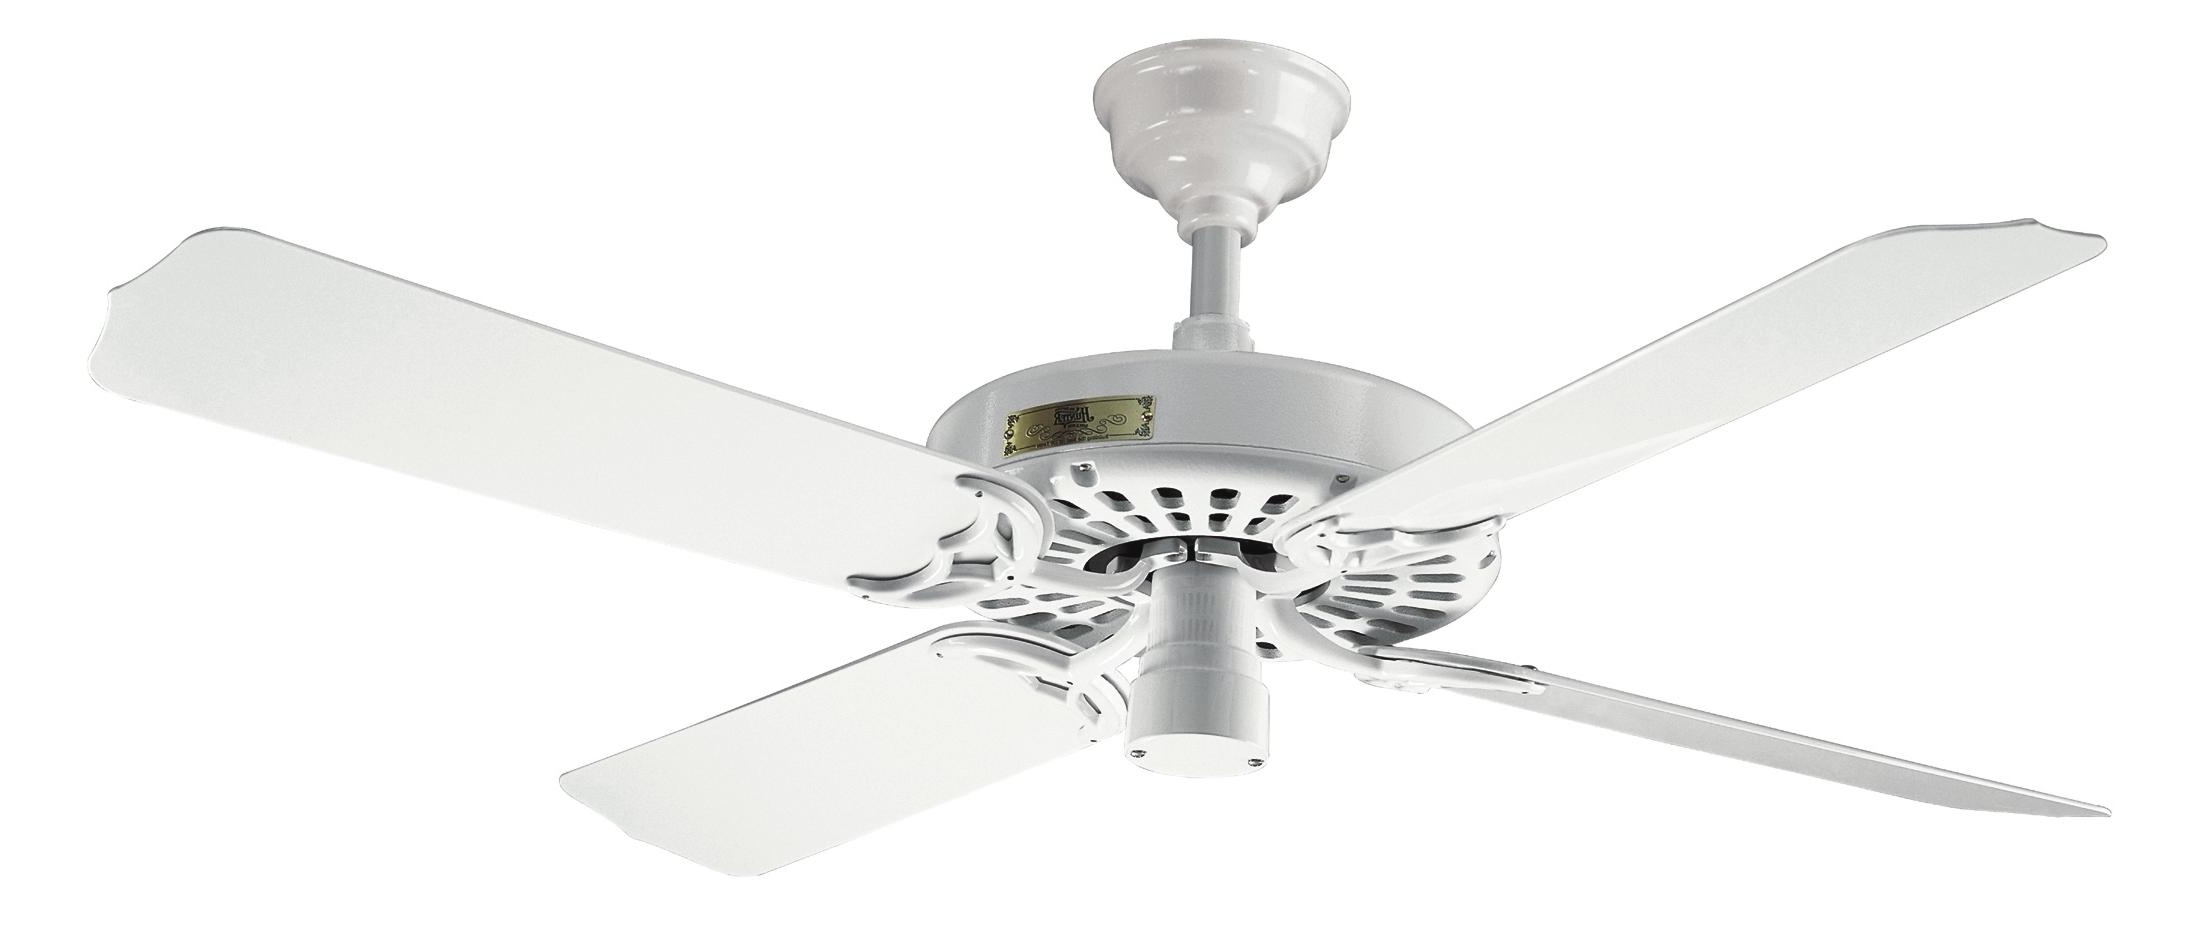 Current Outdoor Ceiling Fans By Hunter With Hunter Outdoor Original White Ceiling Fan 25602 In White, Best (View 4 of 20)